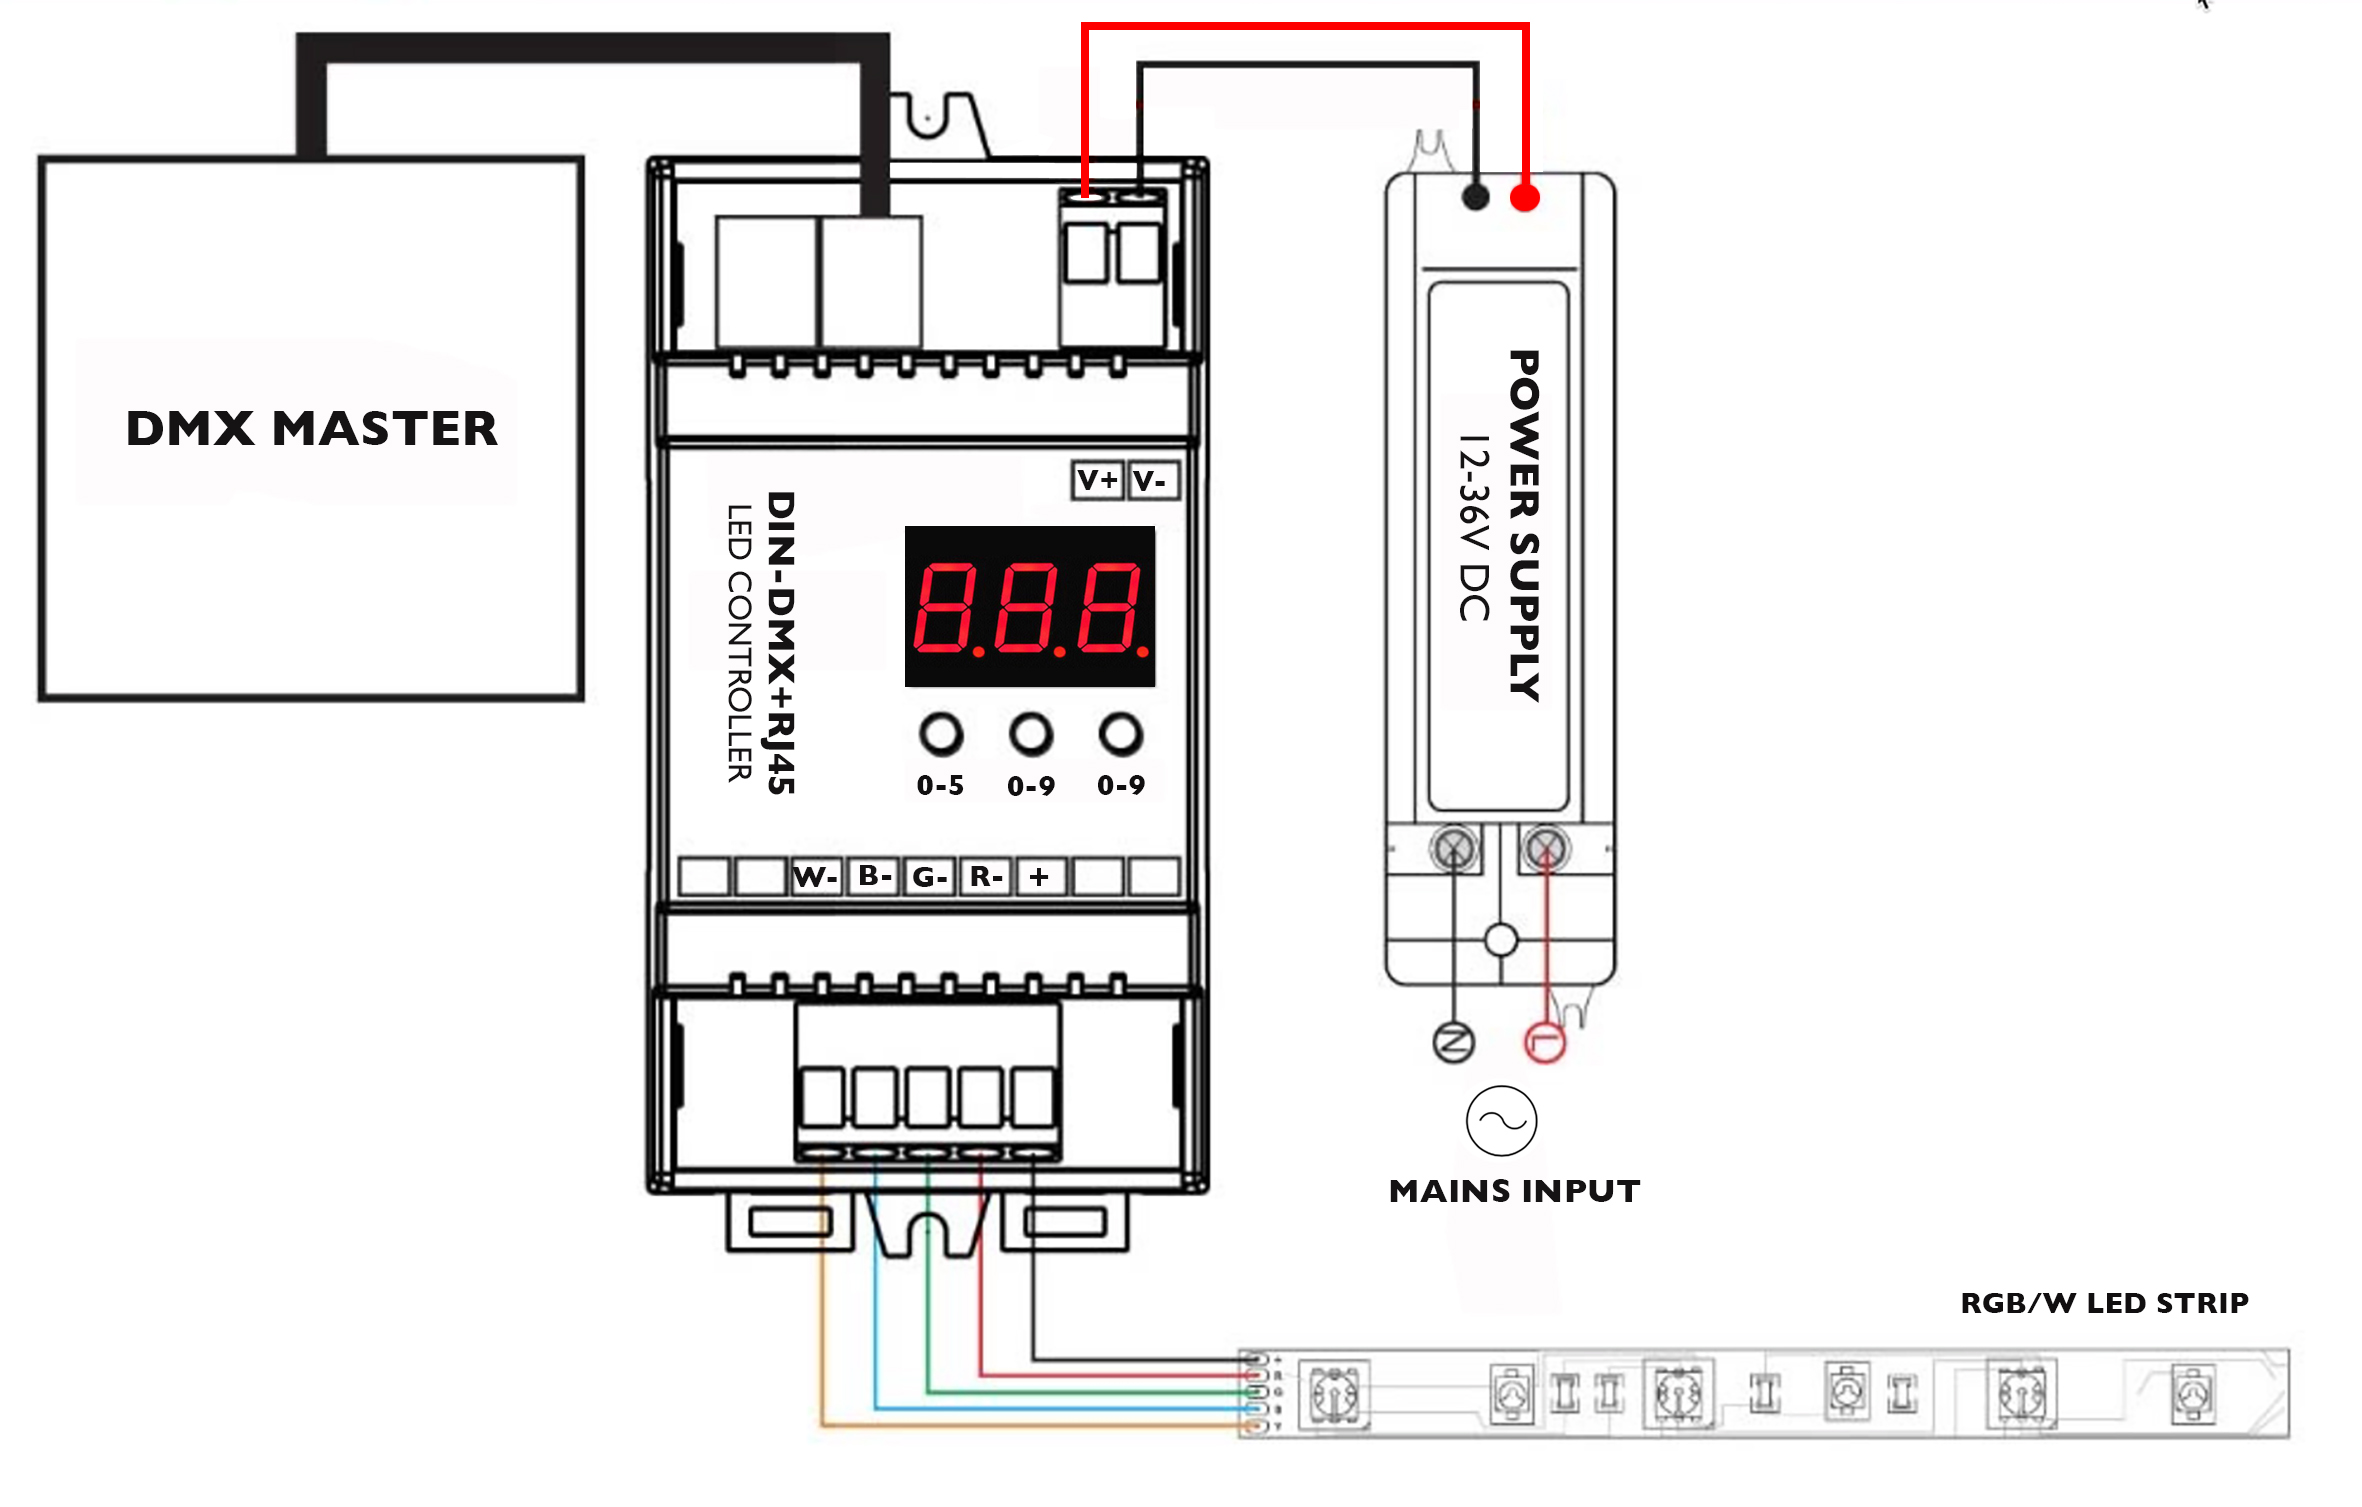 Dmx 512 Wiring Diagram Further Led Controller RGB LED DMX